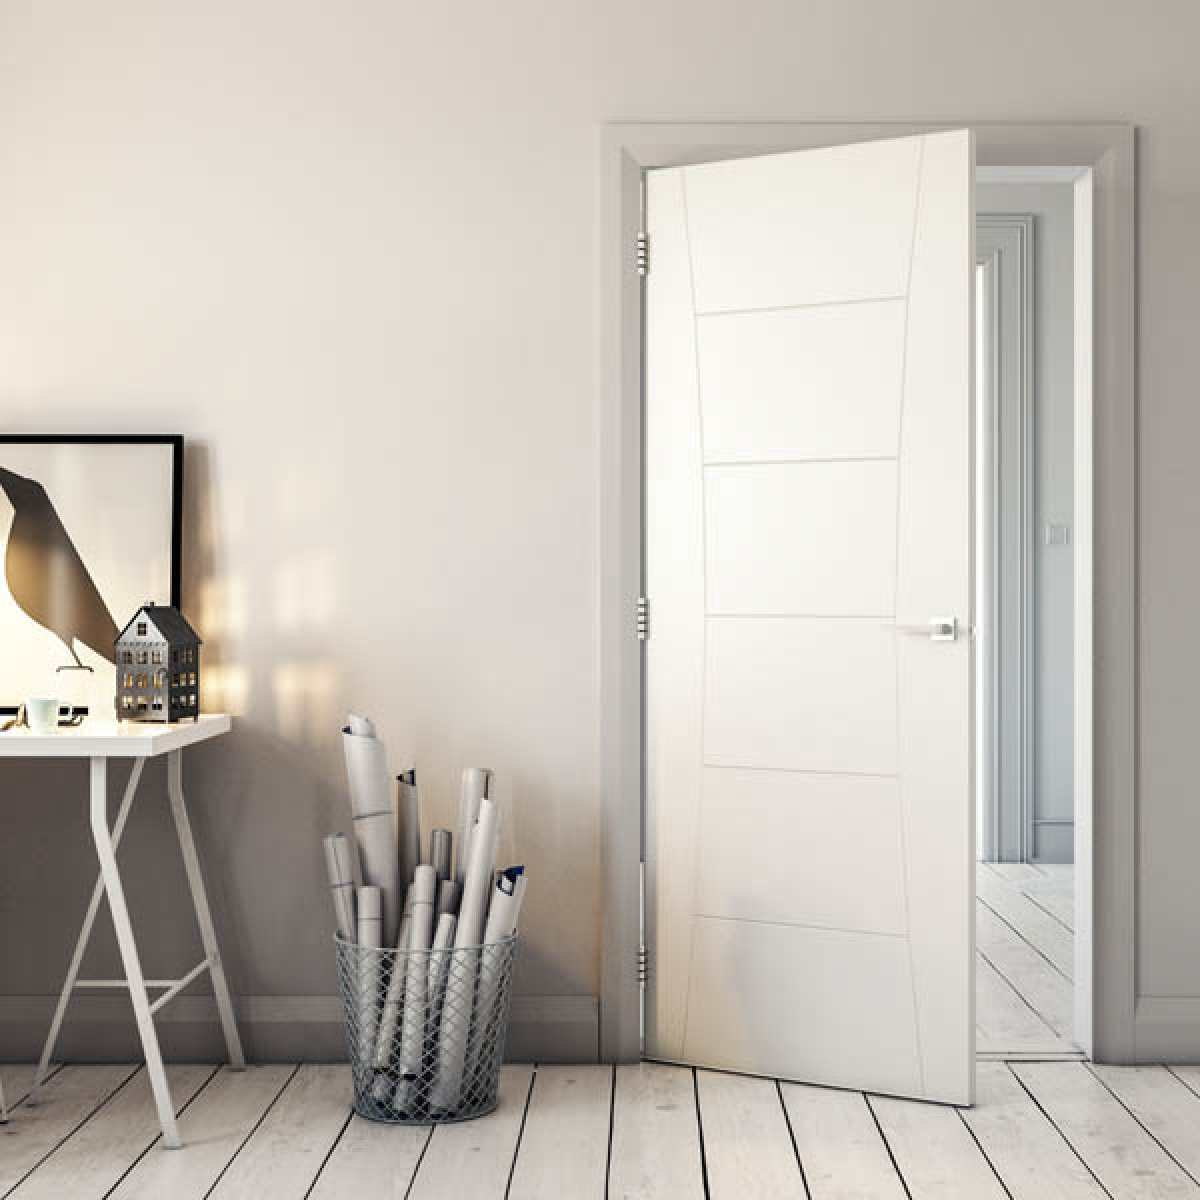 pamplona white primed lifestyle websters Image by Websters Timber